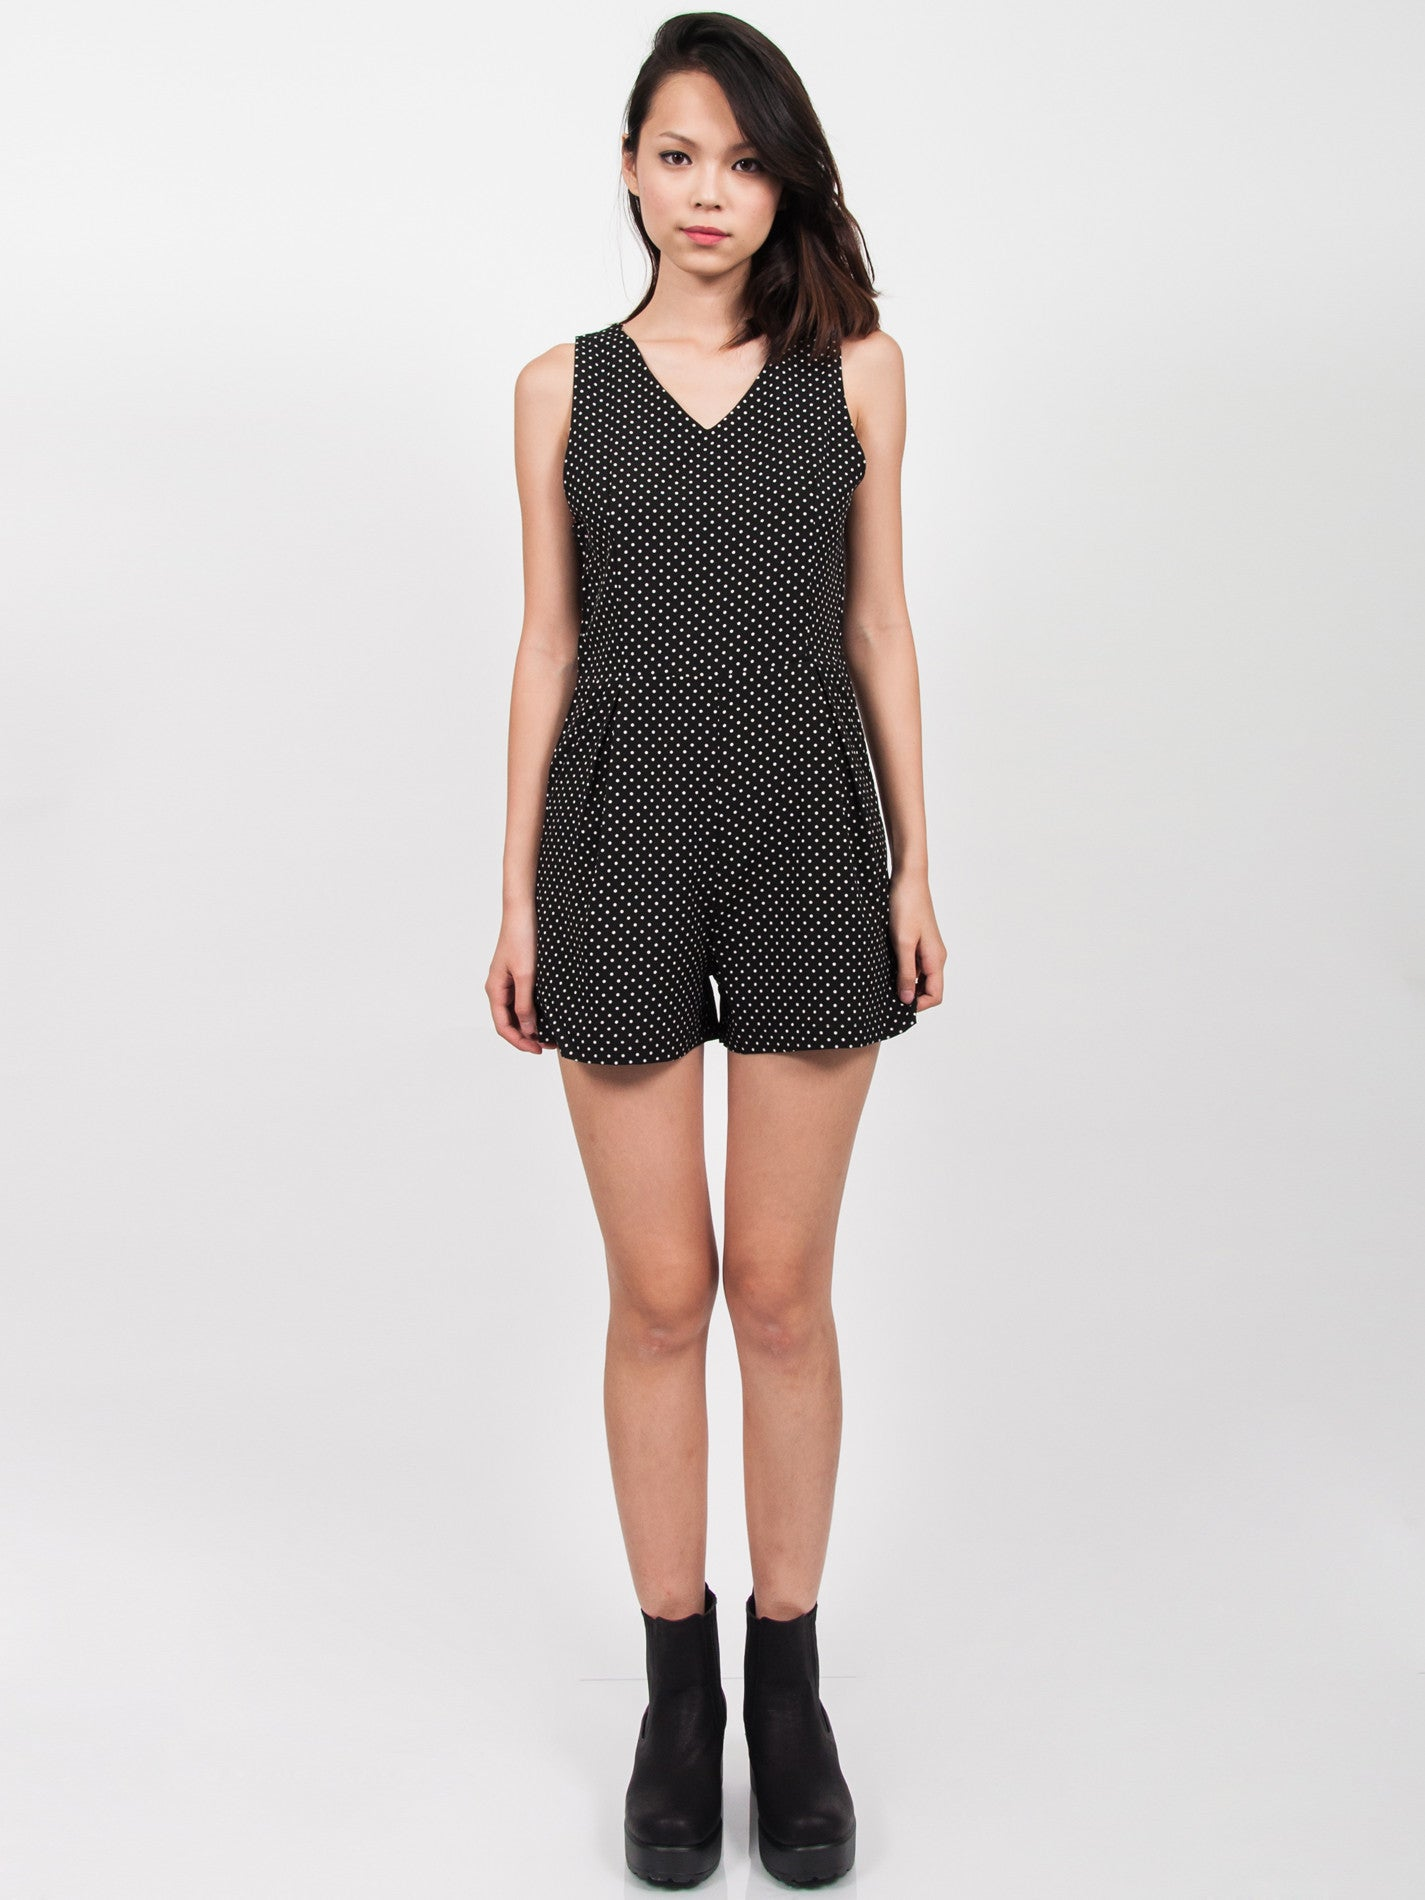 MIKAYLA Dressy Playsuit (Dots)